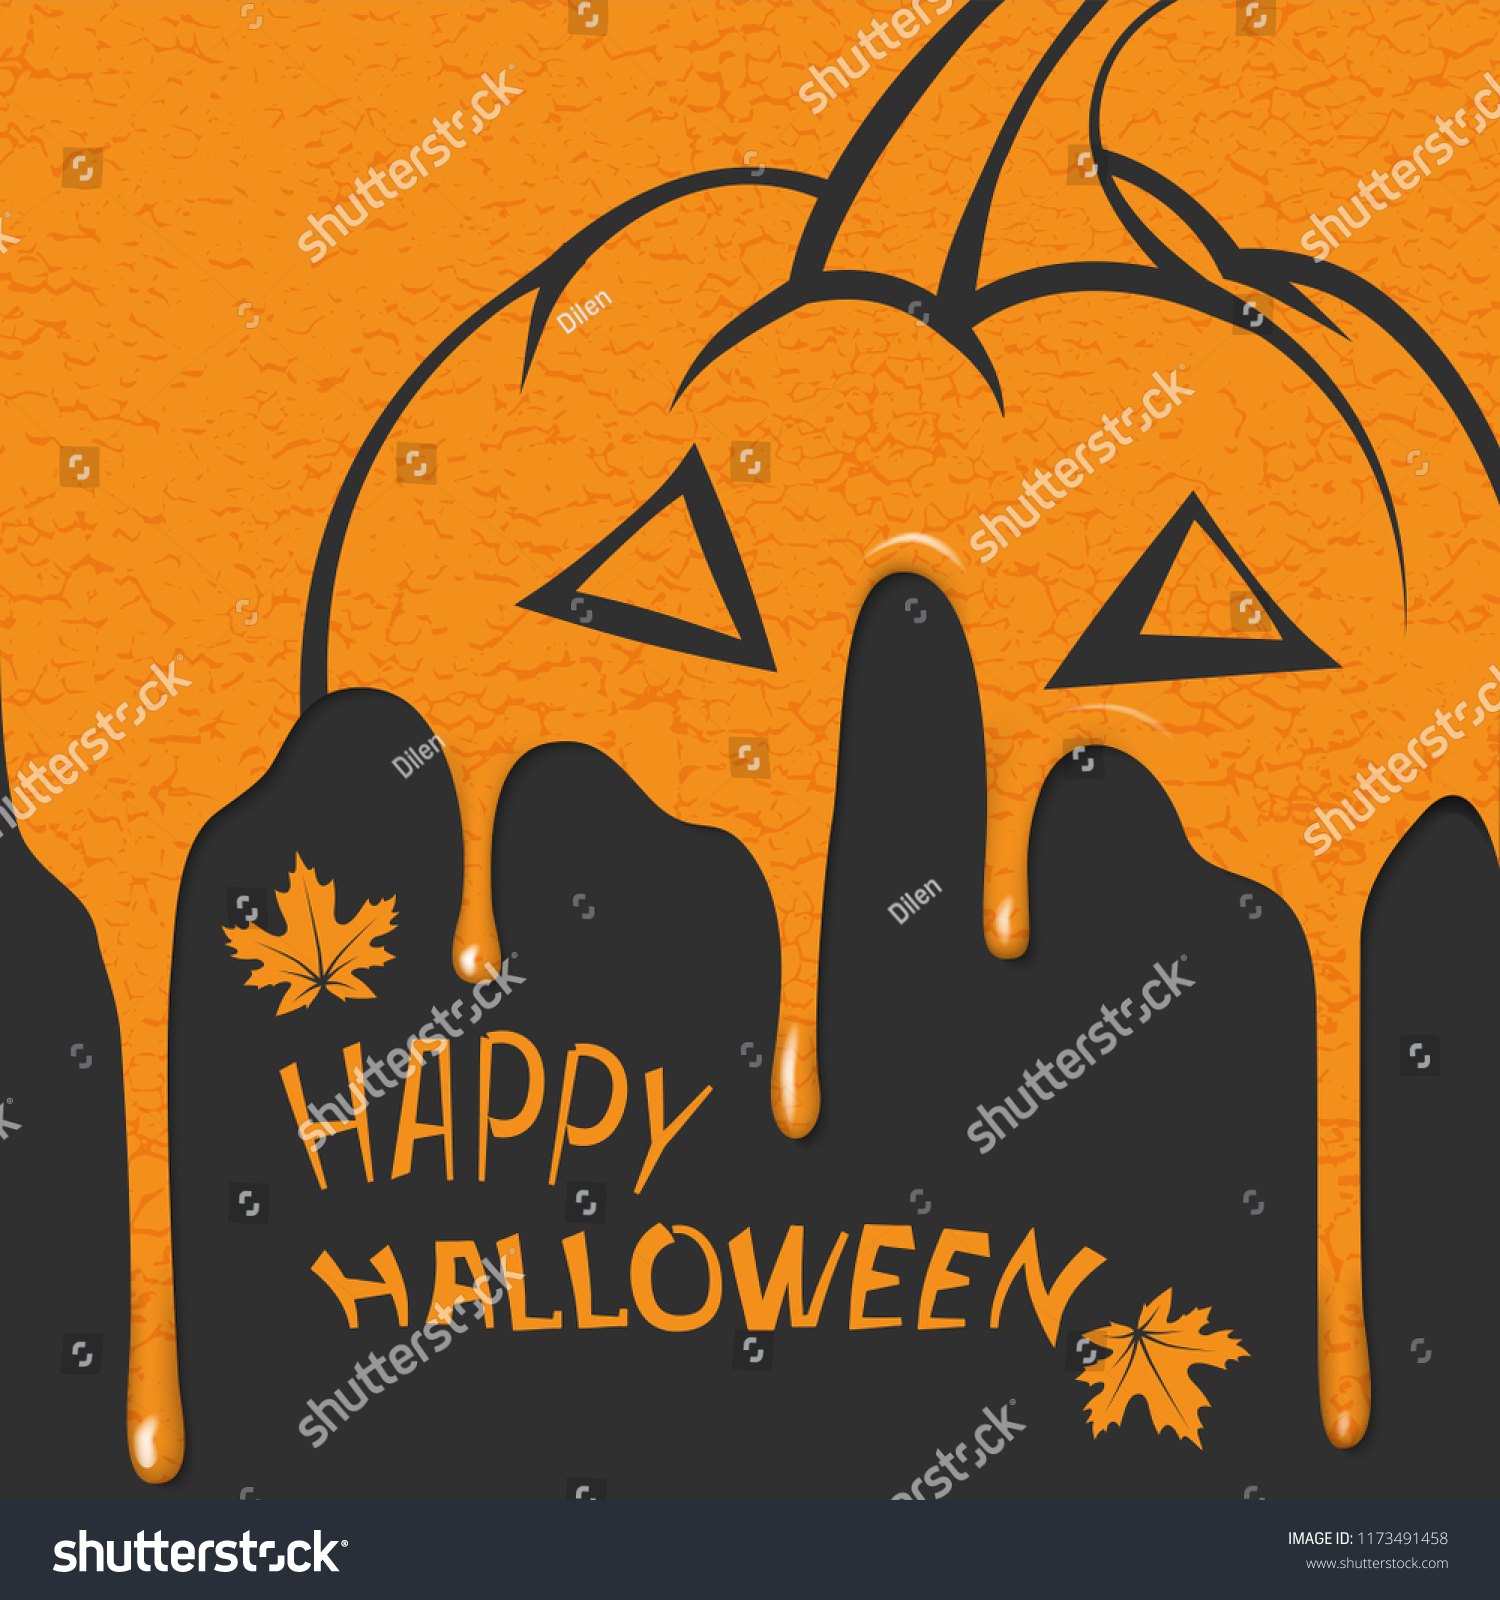 Flat Image Greeting Card Halloween Silhouette Stock Vector Royalty